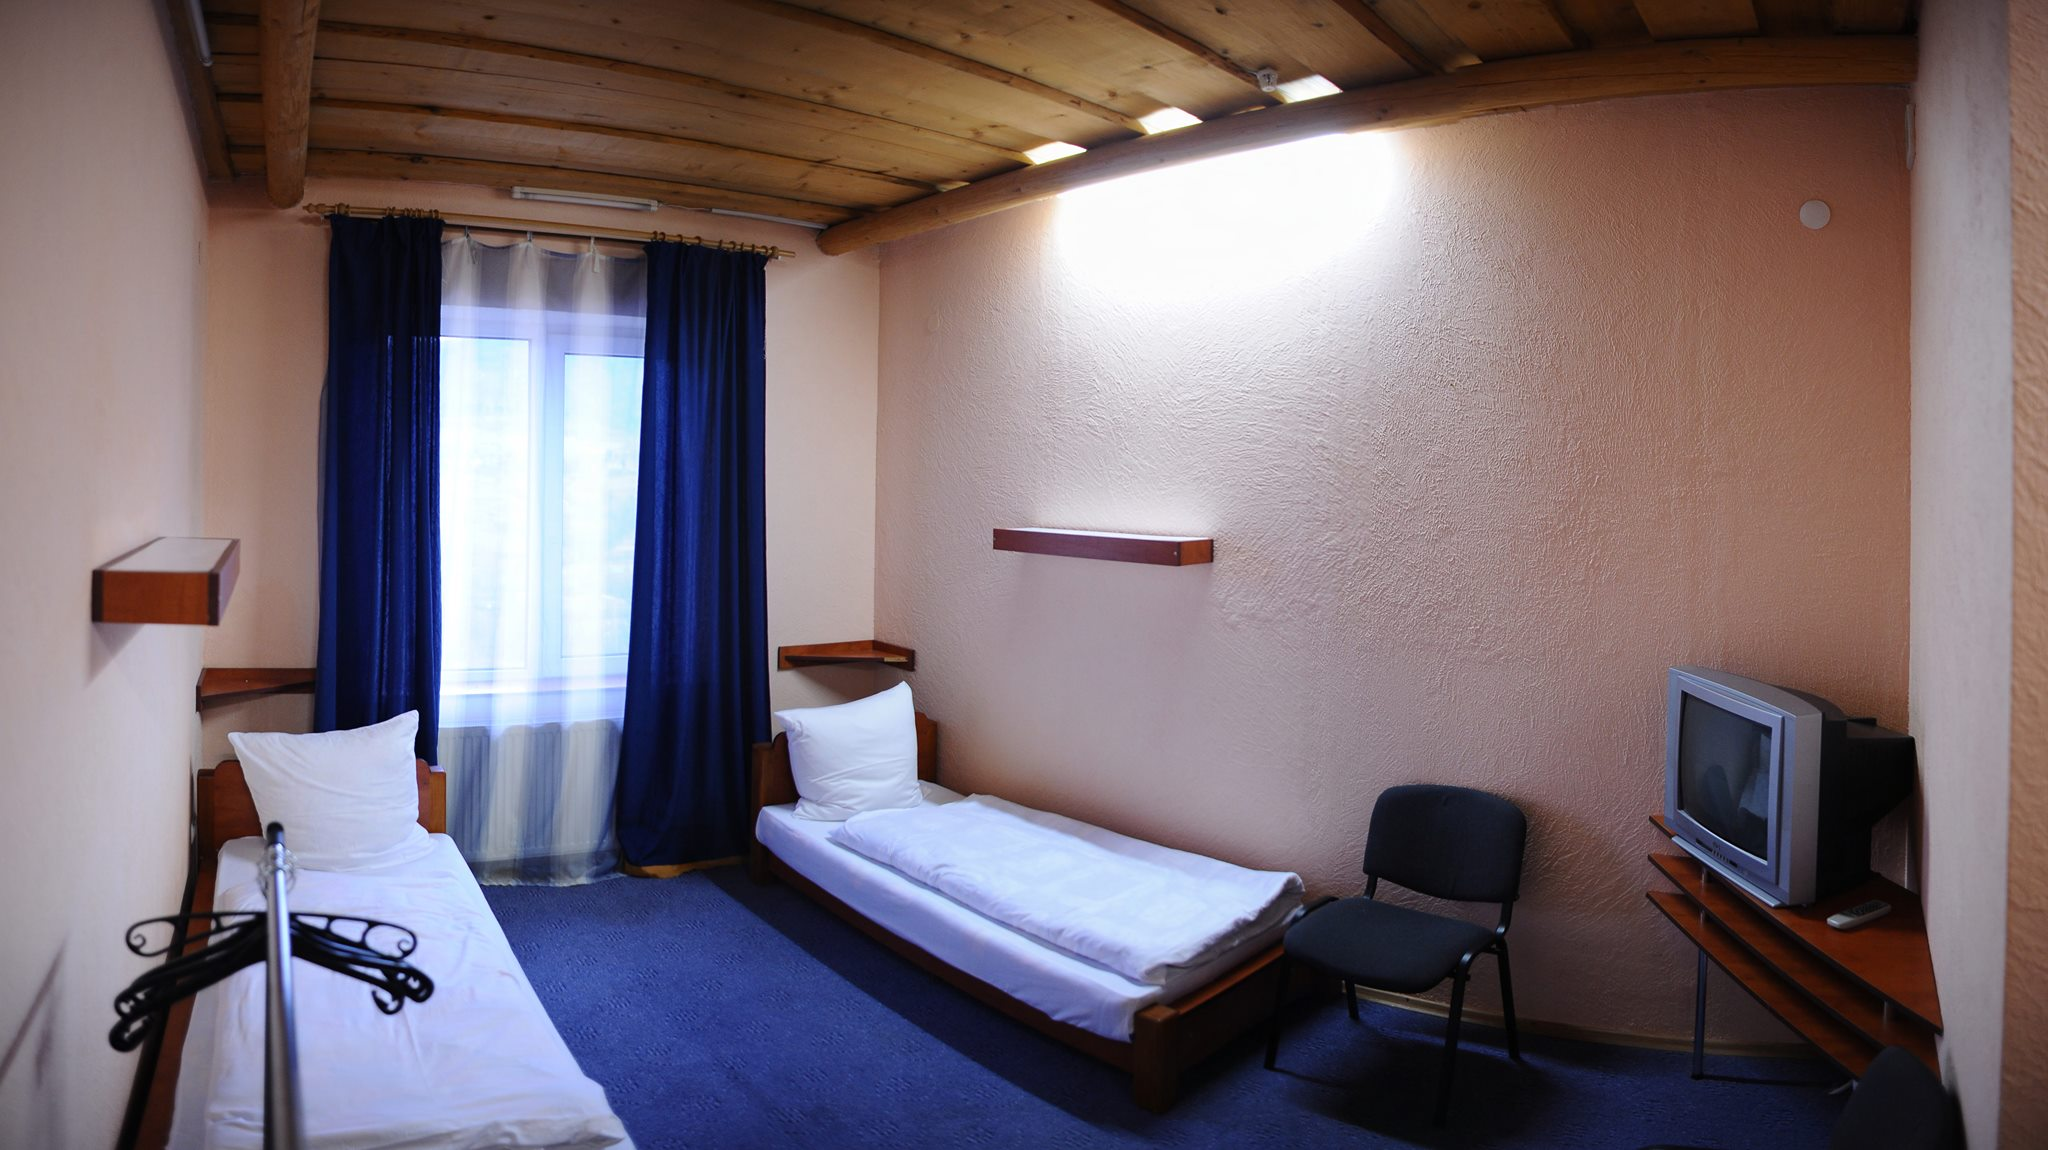 Twin Room. Room with satellite TV, WC, bathroom. Breakfast included ...